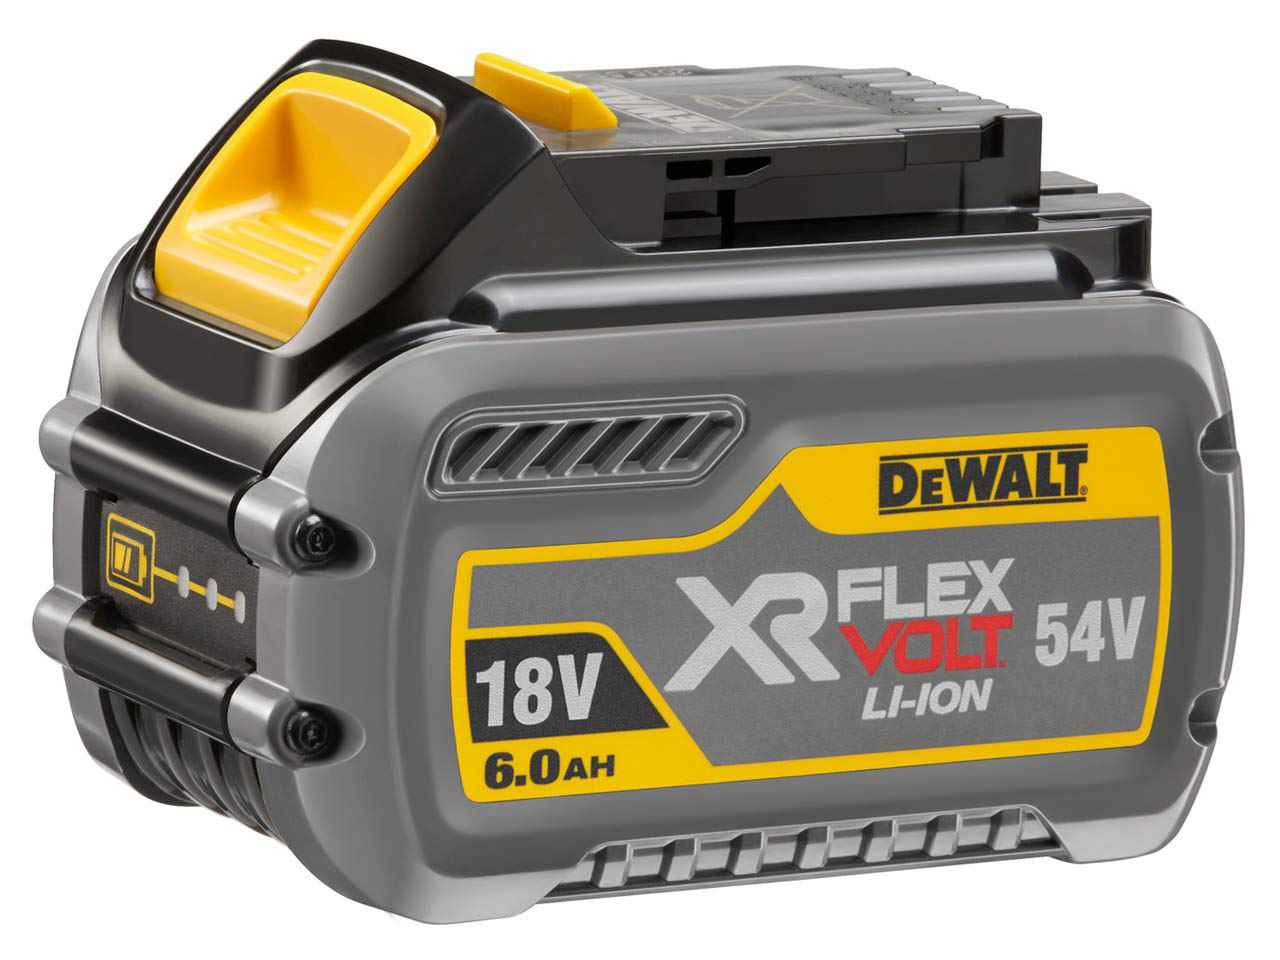 DeWalt DCB546 18v/54v XR 6 0Ah Li-ion FlexVolt Battery Pack